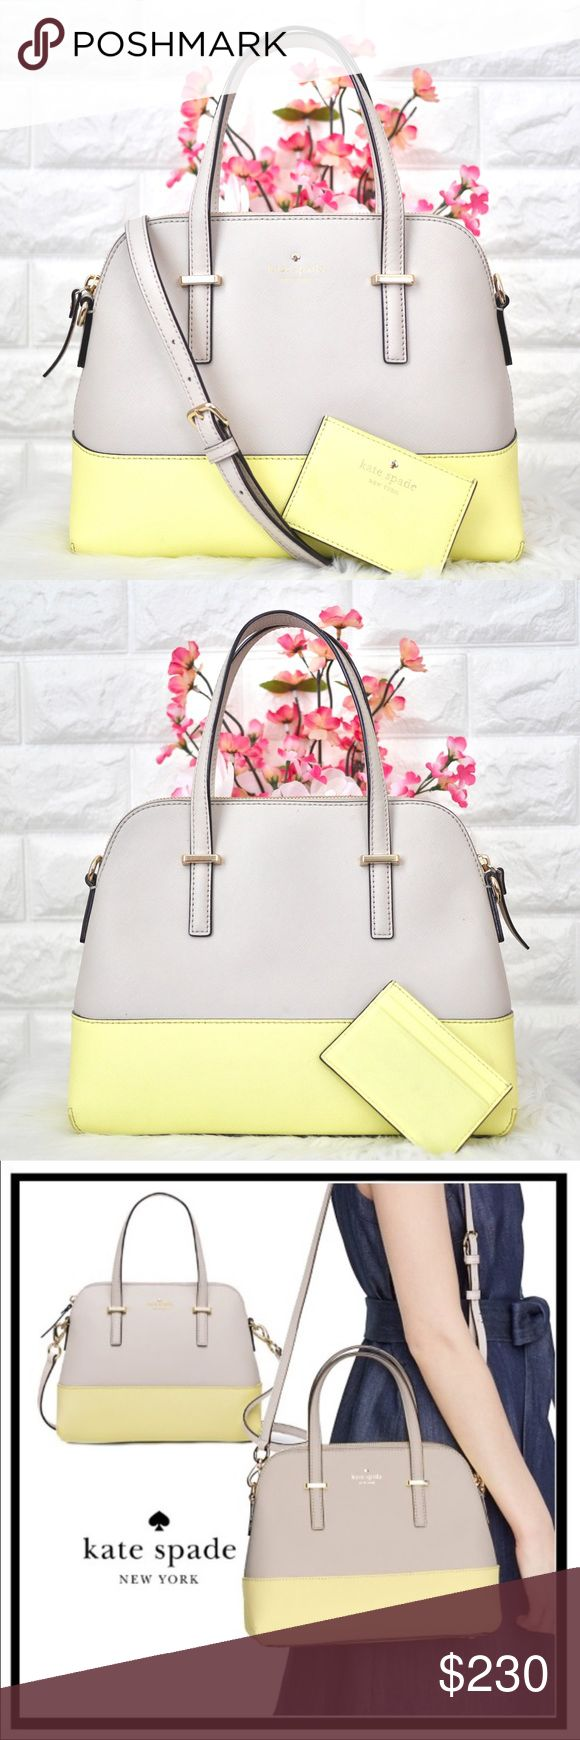 """💖Kate Spade Cedar Street Maise with Card Holder LIKE NEW. • Purse is Like new. No stains rips or tears. • Card Holder is in good used condition, has some wear. Can hold 5-6 cards for me.  Color: Taupe/Yellow Material: Crosshatched Leather  Dimension: 9H x 11.2W x 5D Strap Drop: 5"""" handheld ; adjustable: 18-20.5""""  • Accepting reasonable offers! Send yours now!💕 kate spade Bags Satchels"""